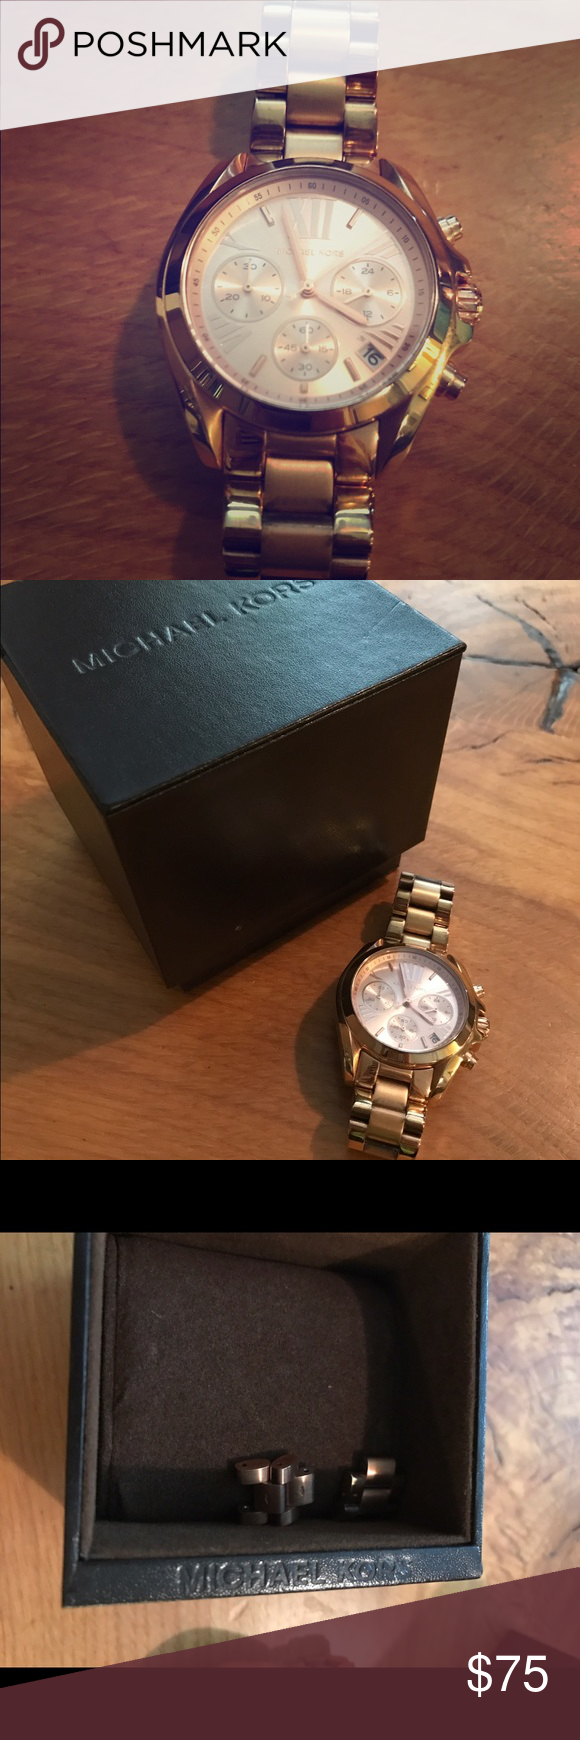 Rose gold Michael Kors watch Beautiful watch with only minor scratches as shown. I have a small wrist between 5-6 in but comes with two extra links and box. Needs new battery but works great. Stainless steel. 251304 KORS Michael Kors Accessories Watches